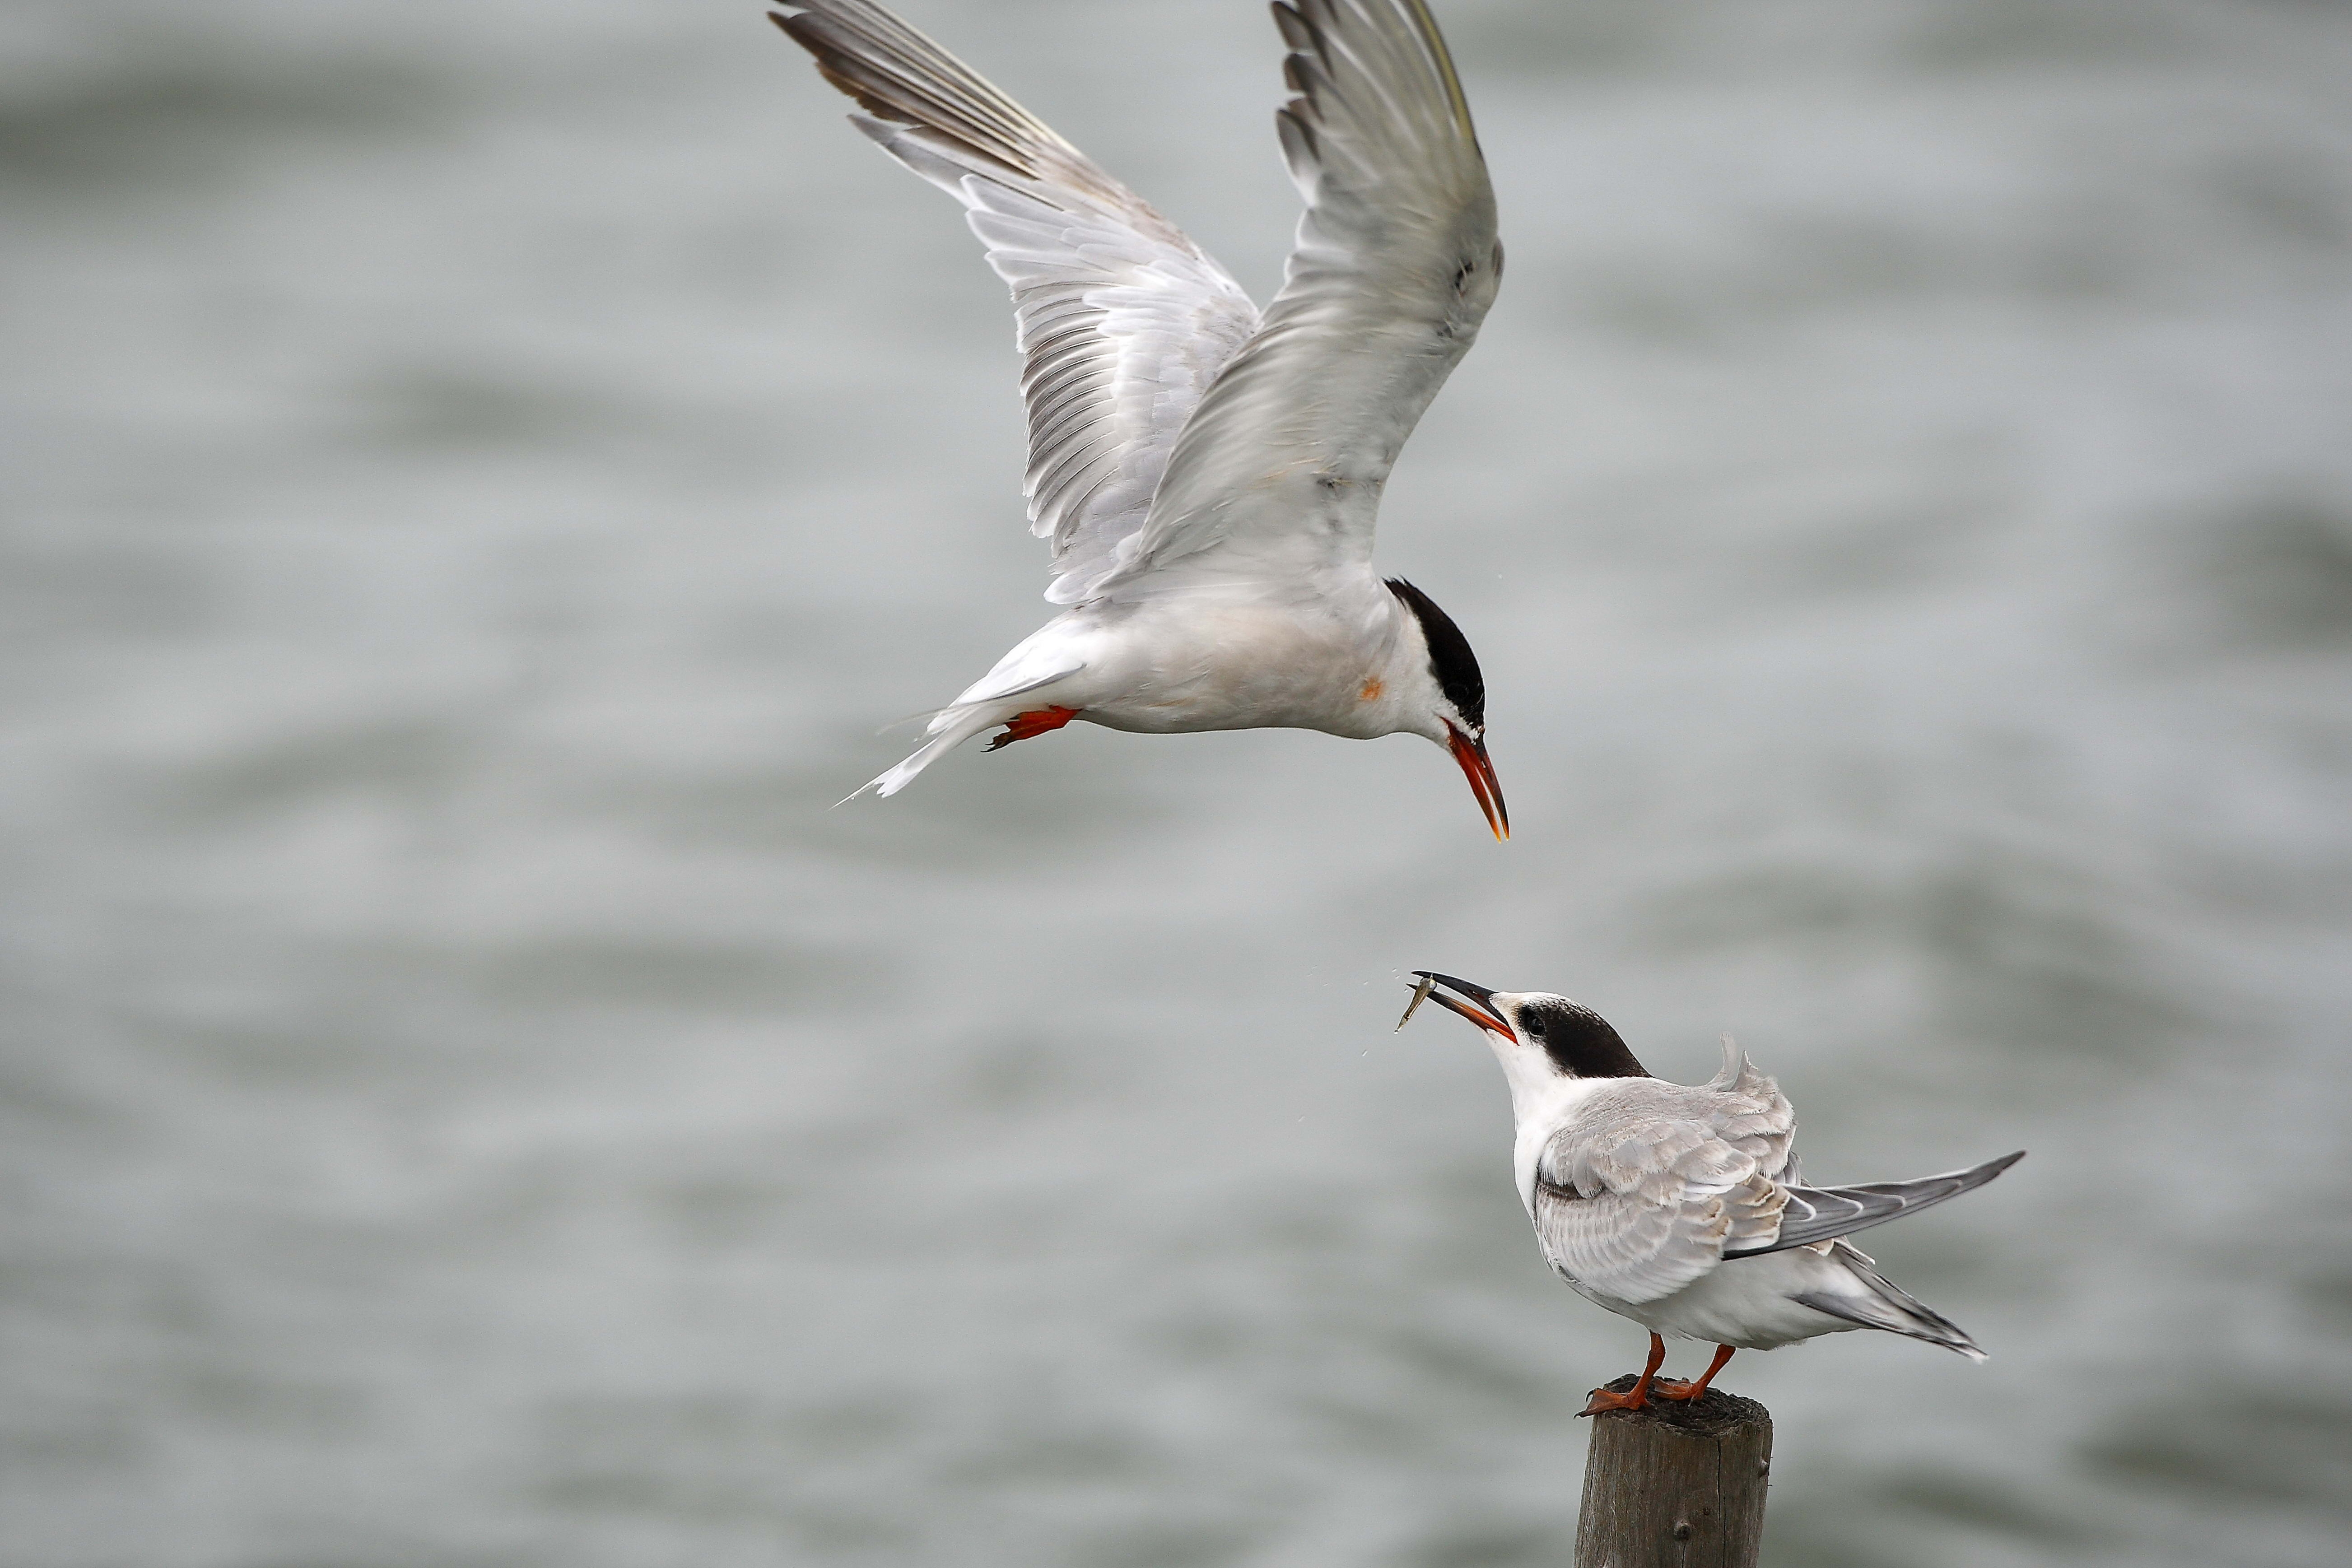 101350 download wallpaper Animals, Gull, Seagull, Mining, Bird screensavers and pictures for free